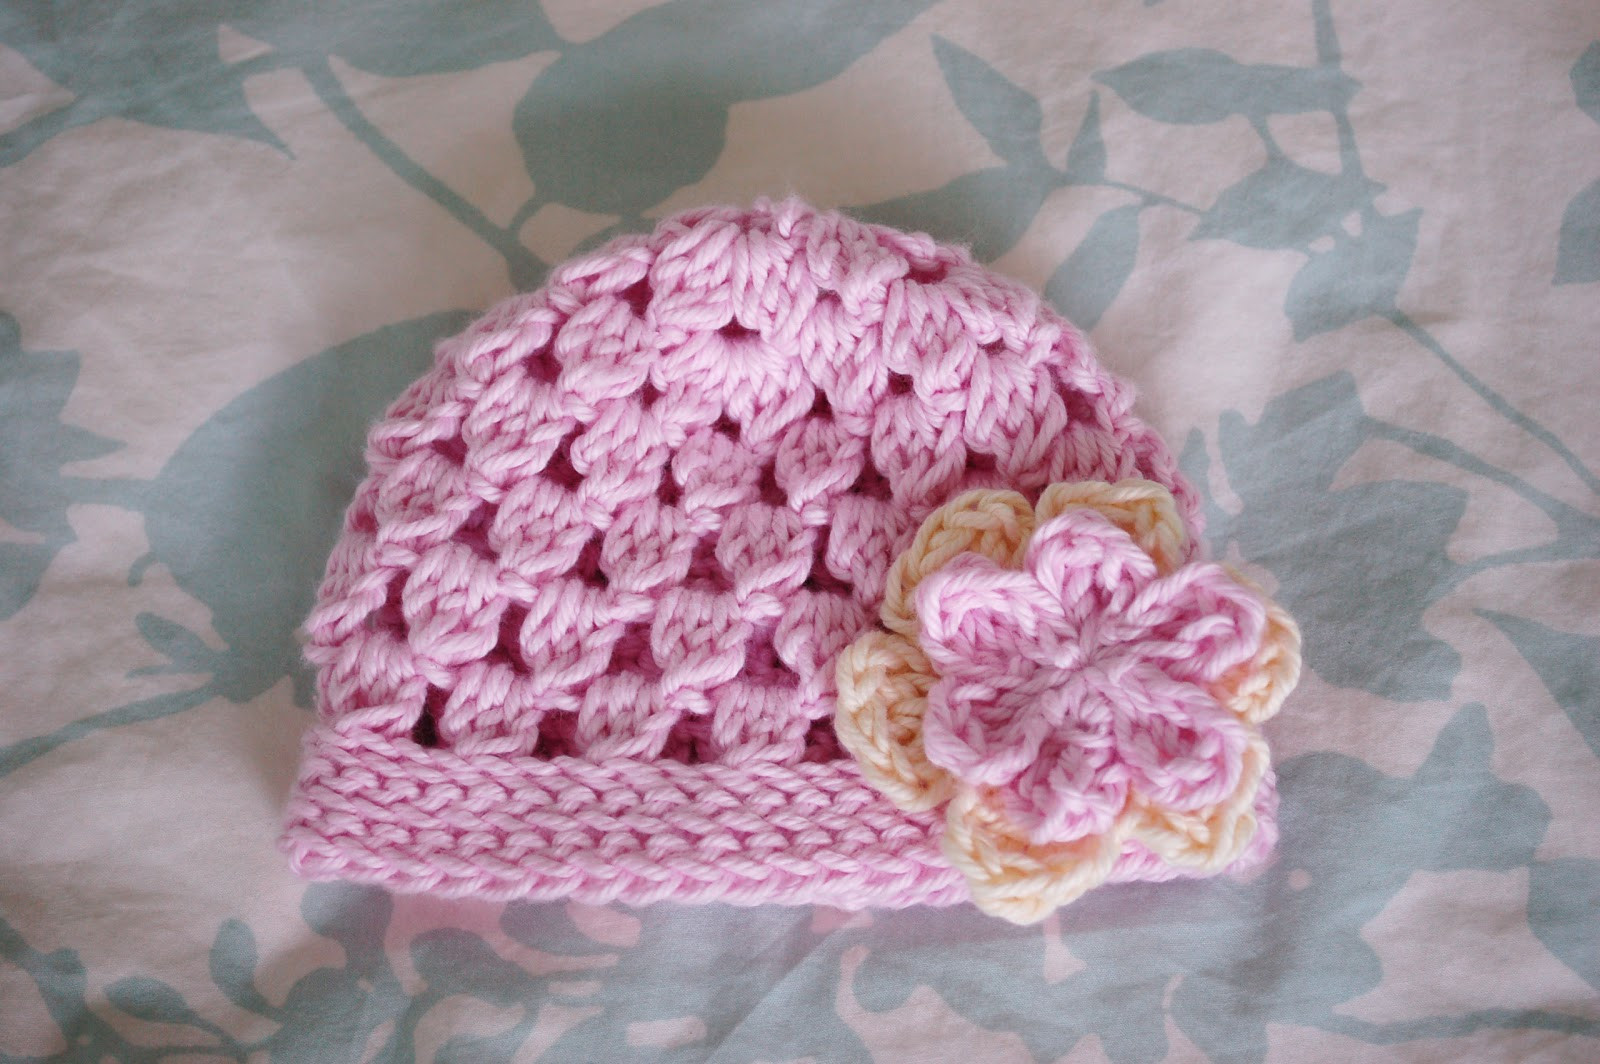 Unique Alli Crafts Free Pattern Cluster Hat Newborn Free Crochet Patterns for Newborns Of Unique 40 Photos Free Crochet Patterns for Newborns